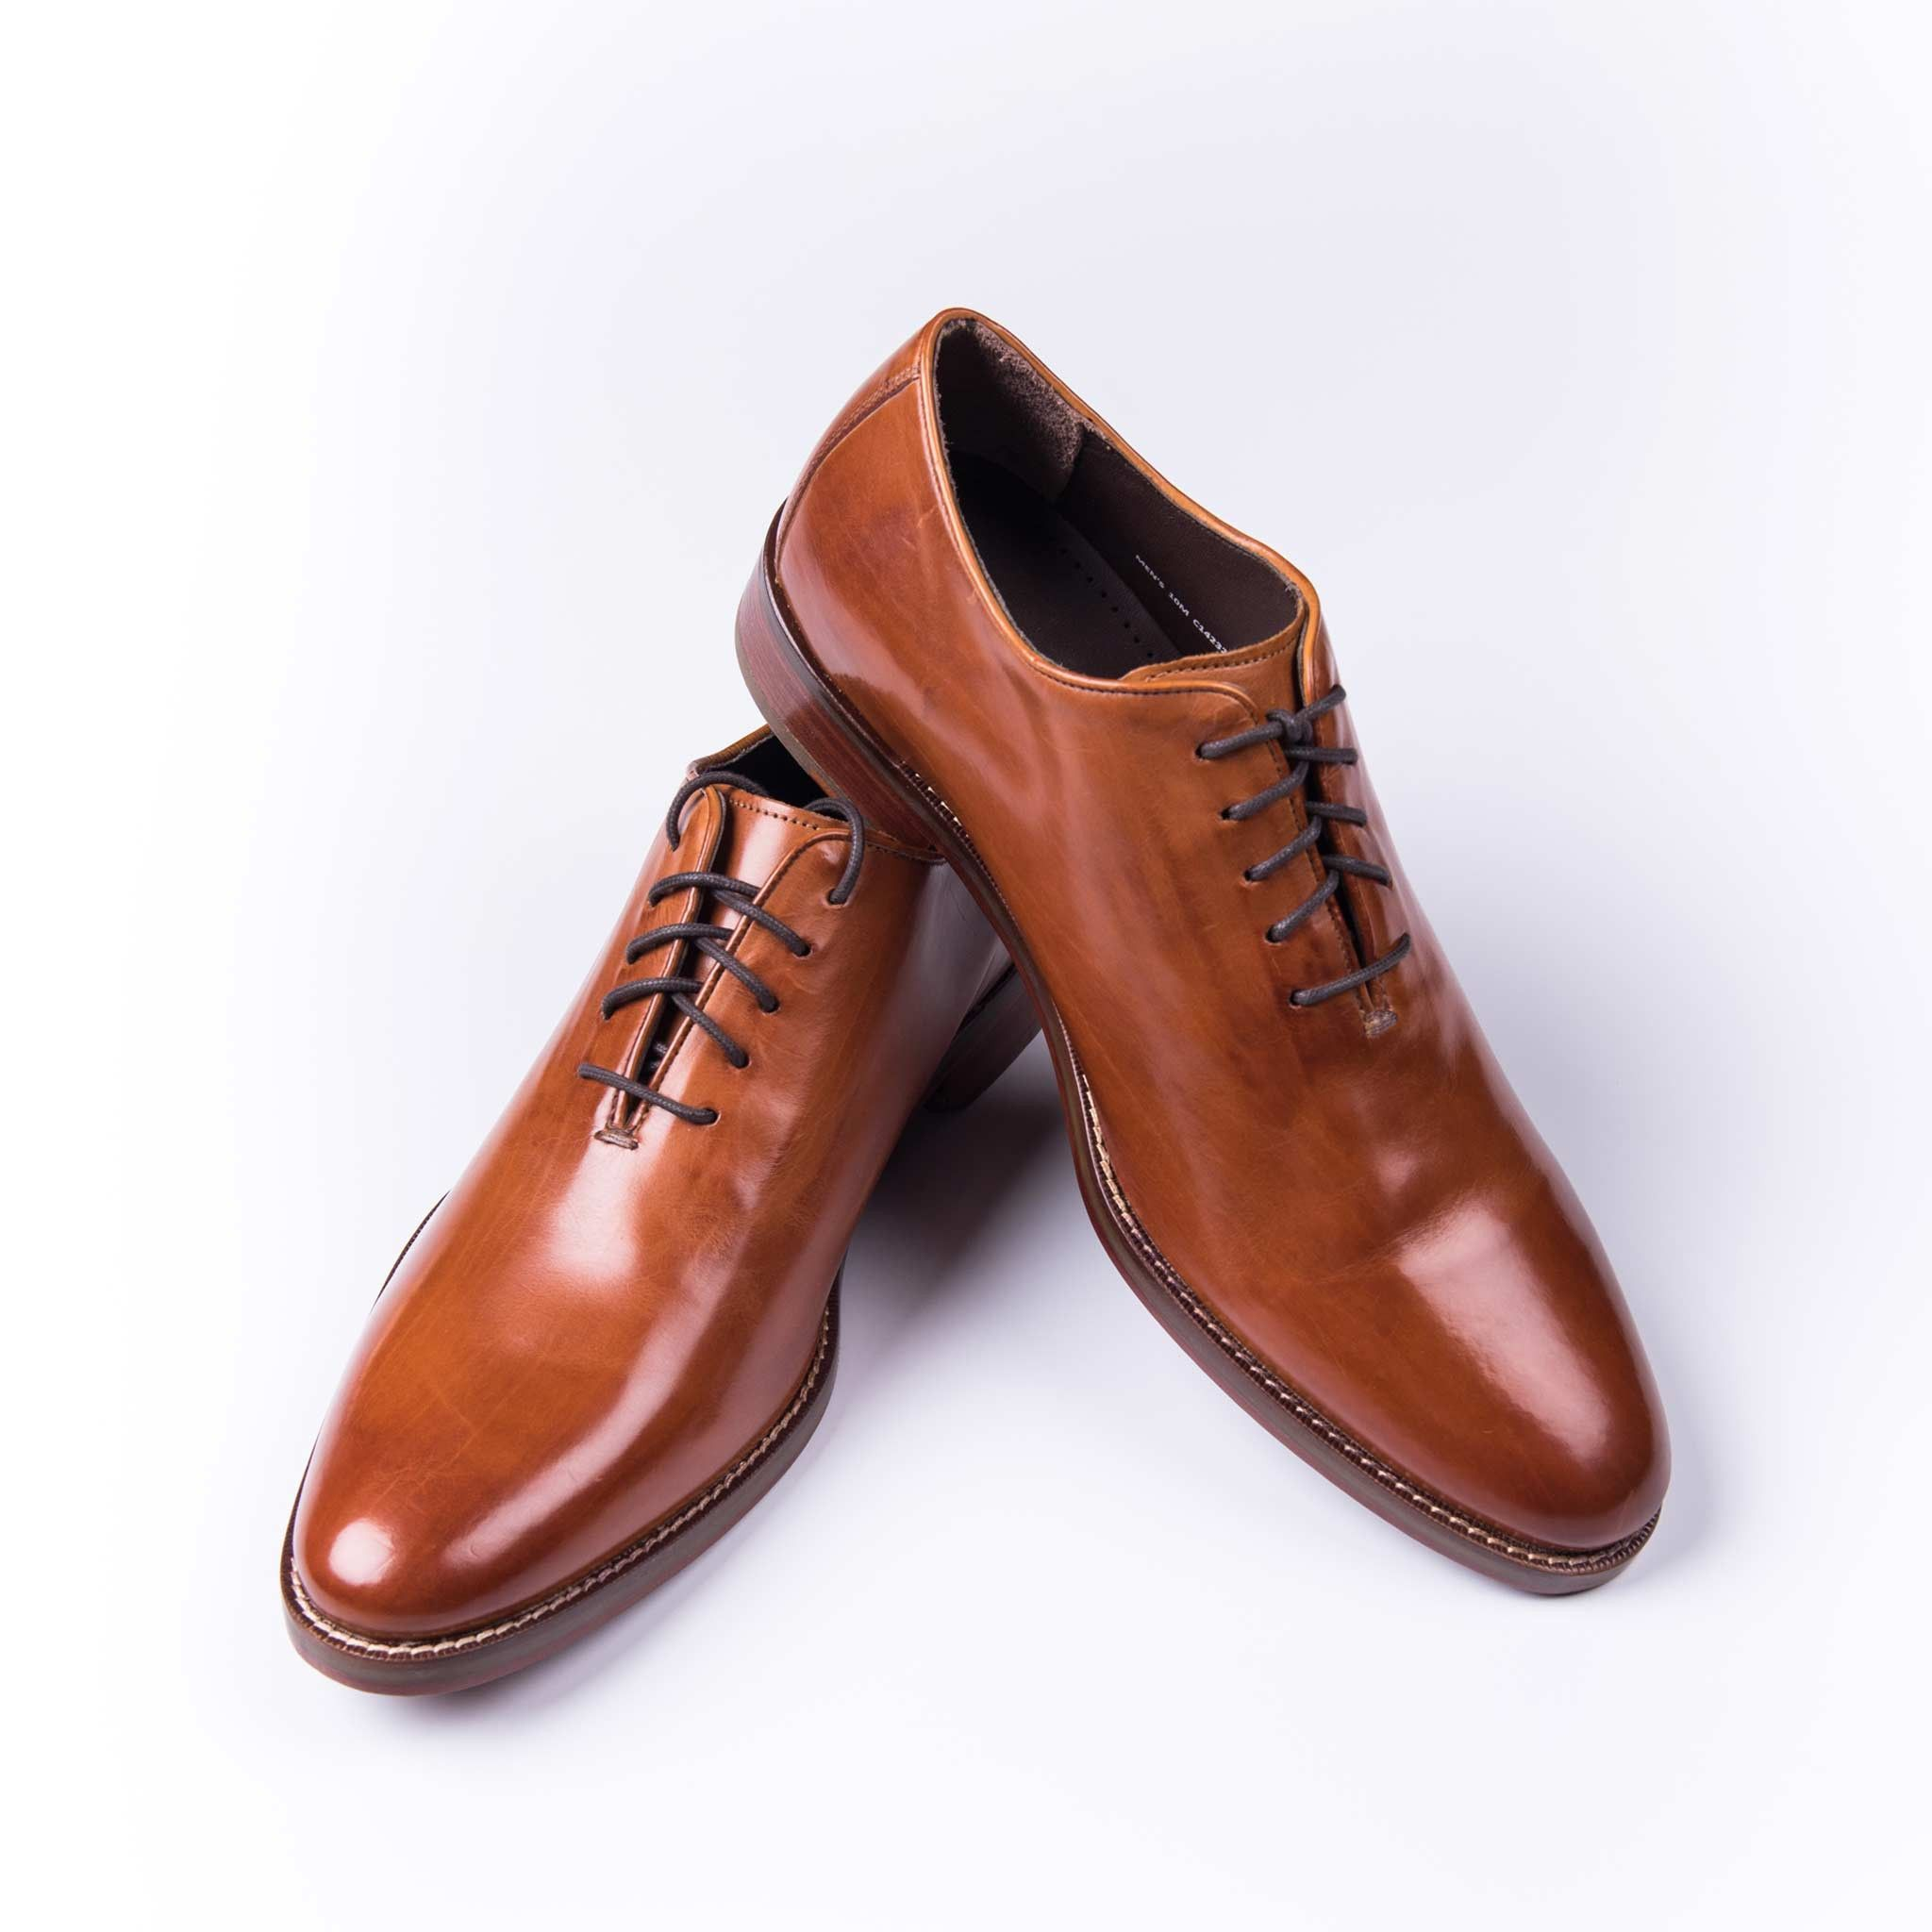 Cole Haan British Tan Shoes